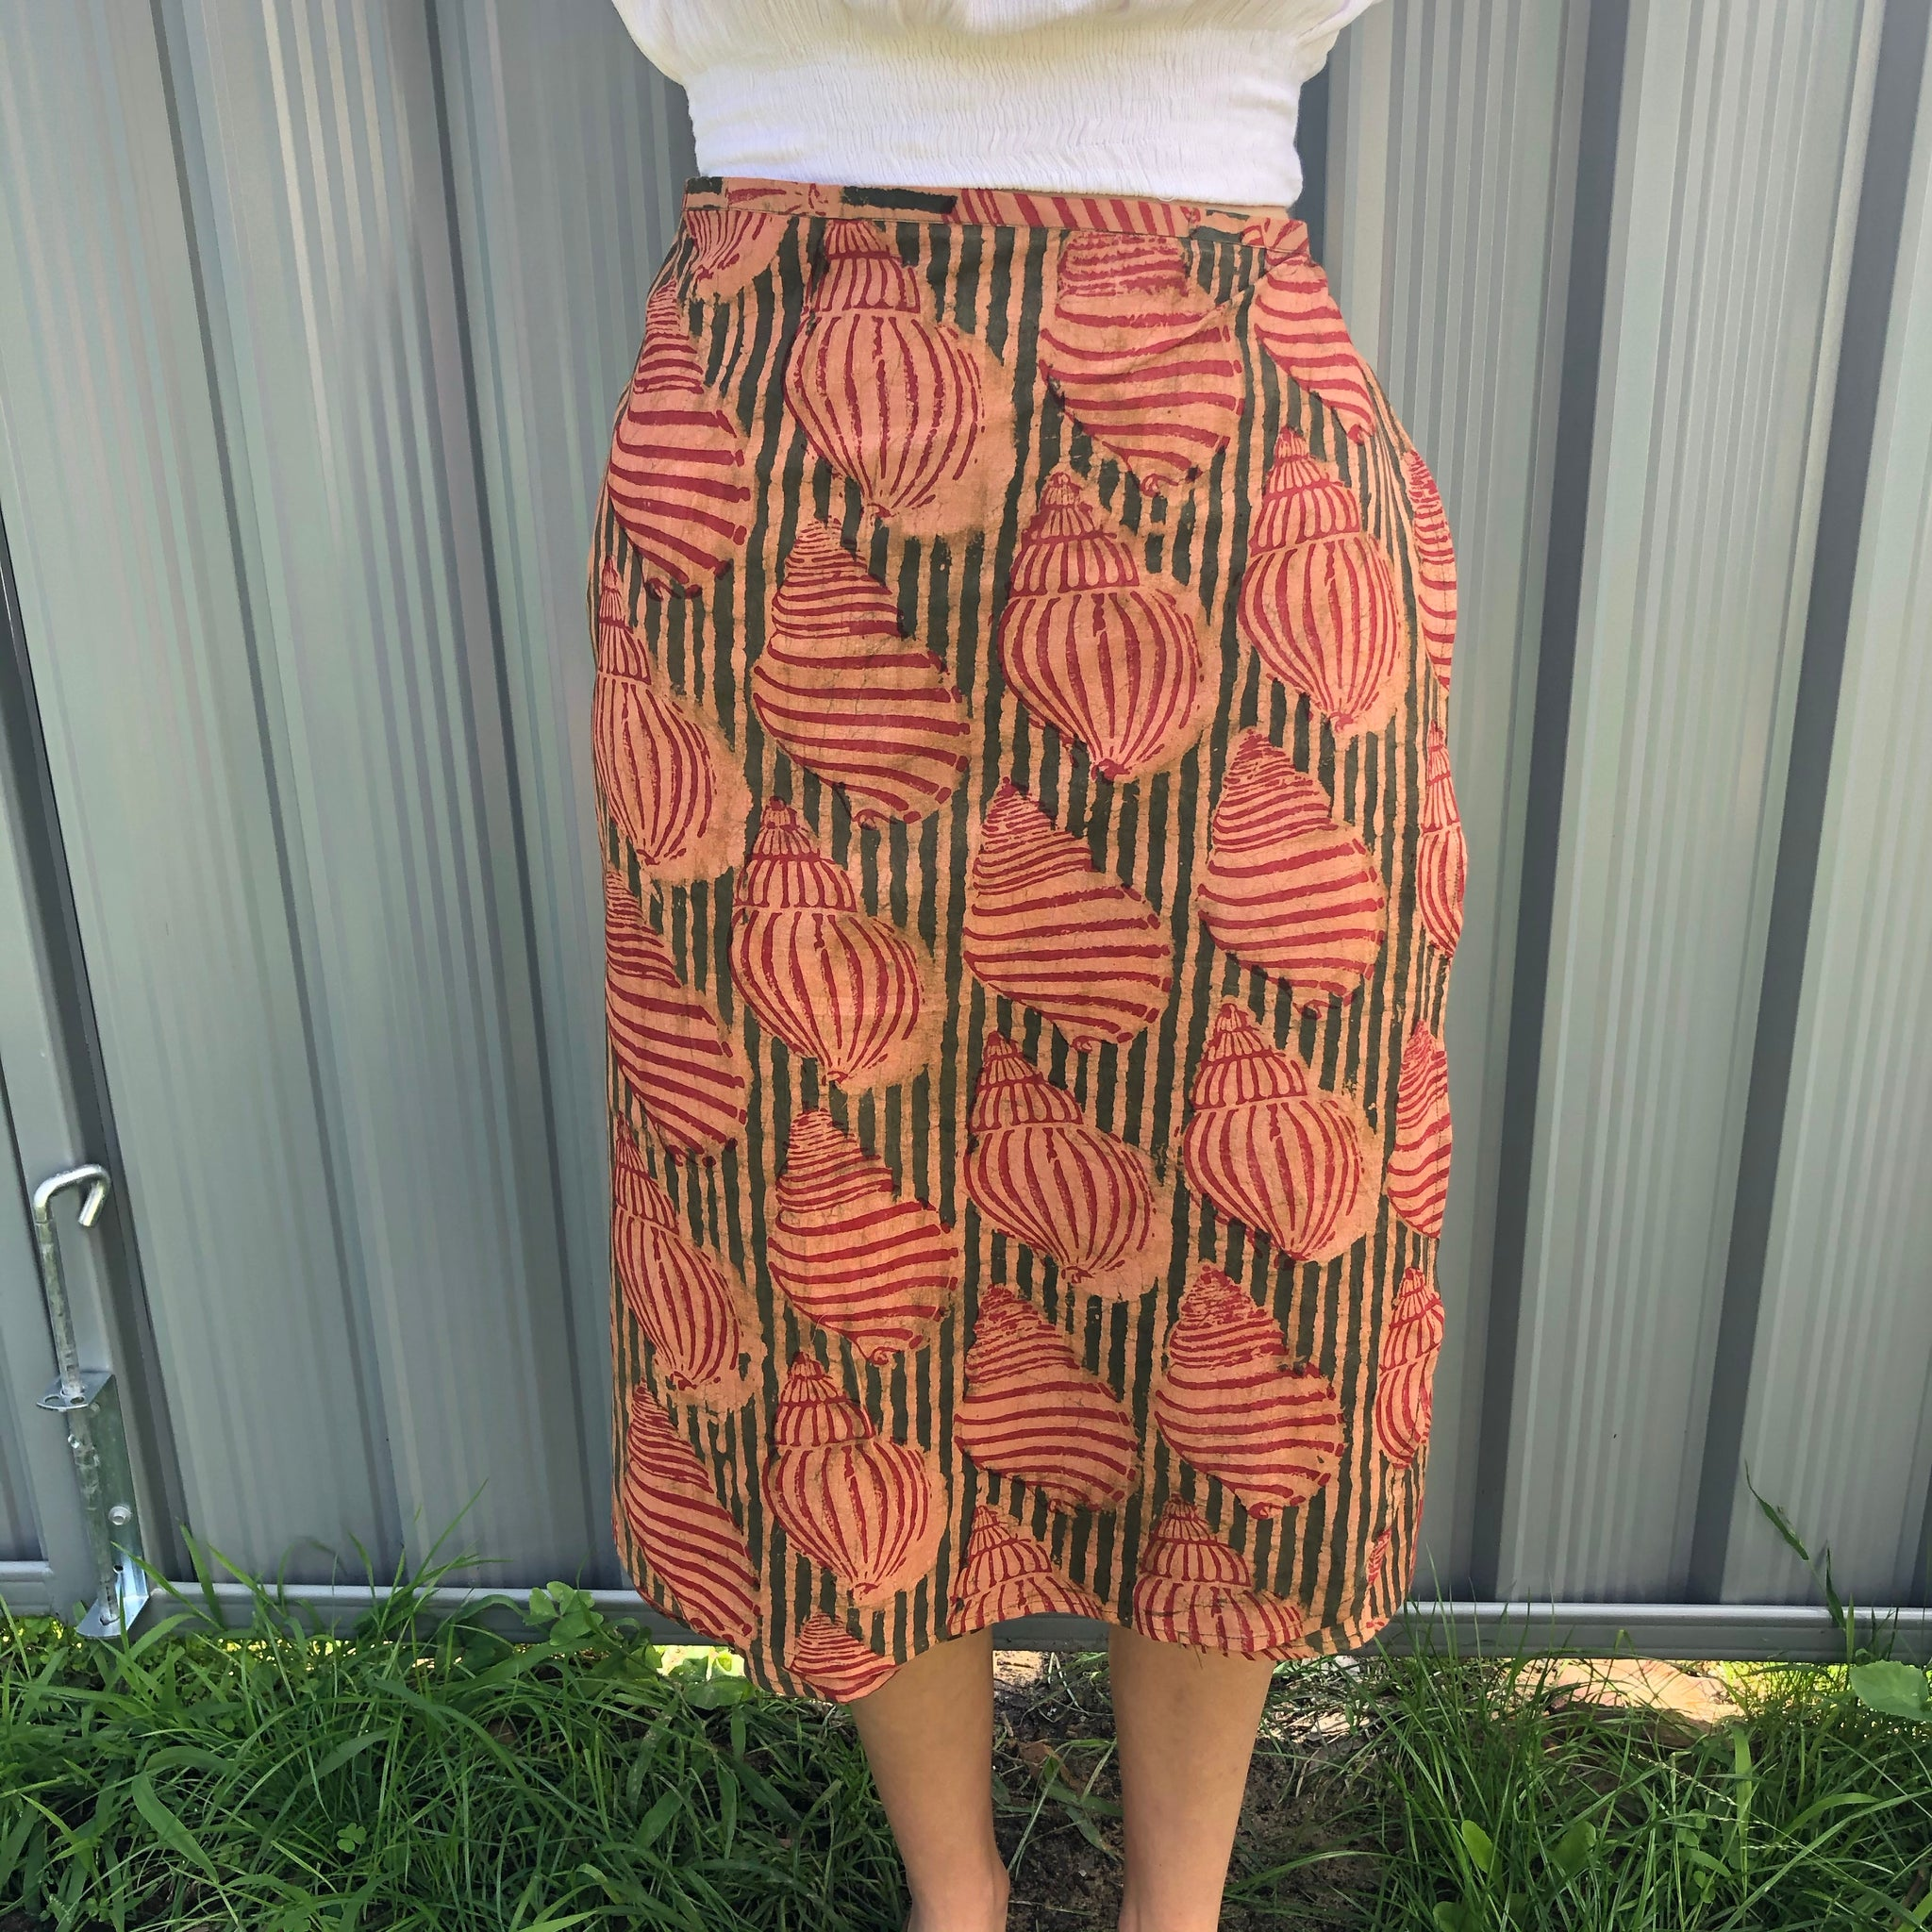 Fair Trade Ethical Cotton Mud Resistant Print Wrap Skirt Shell Design